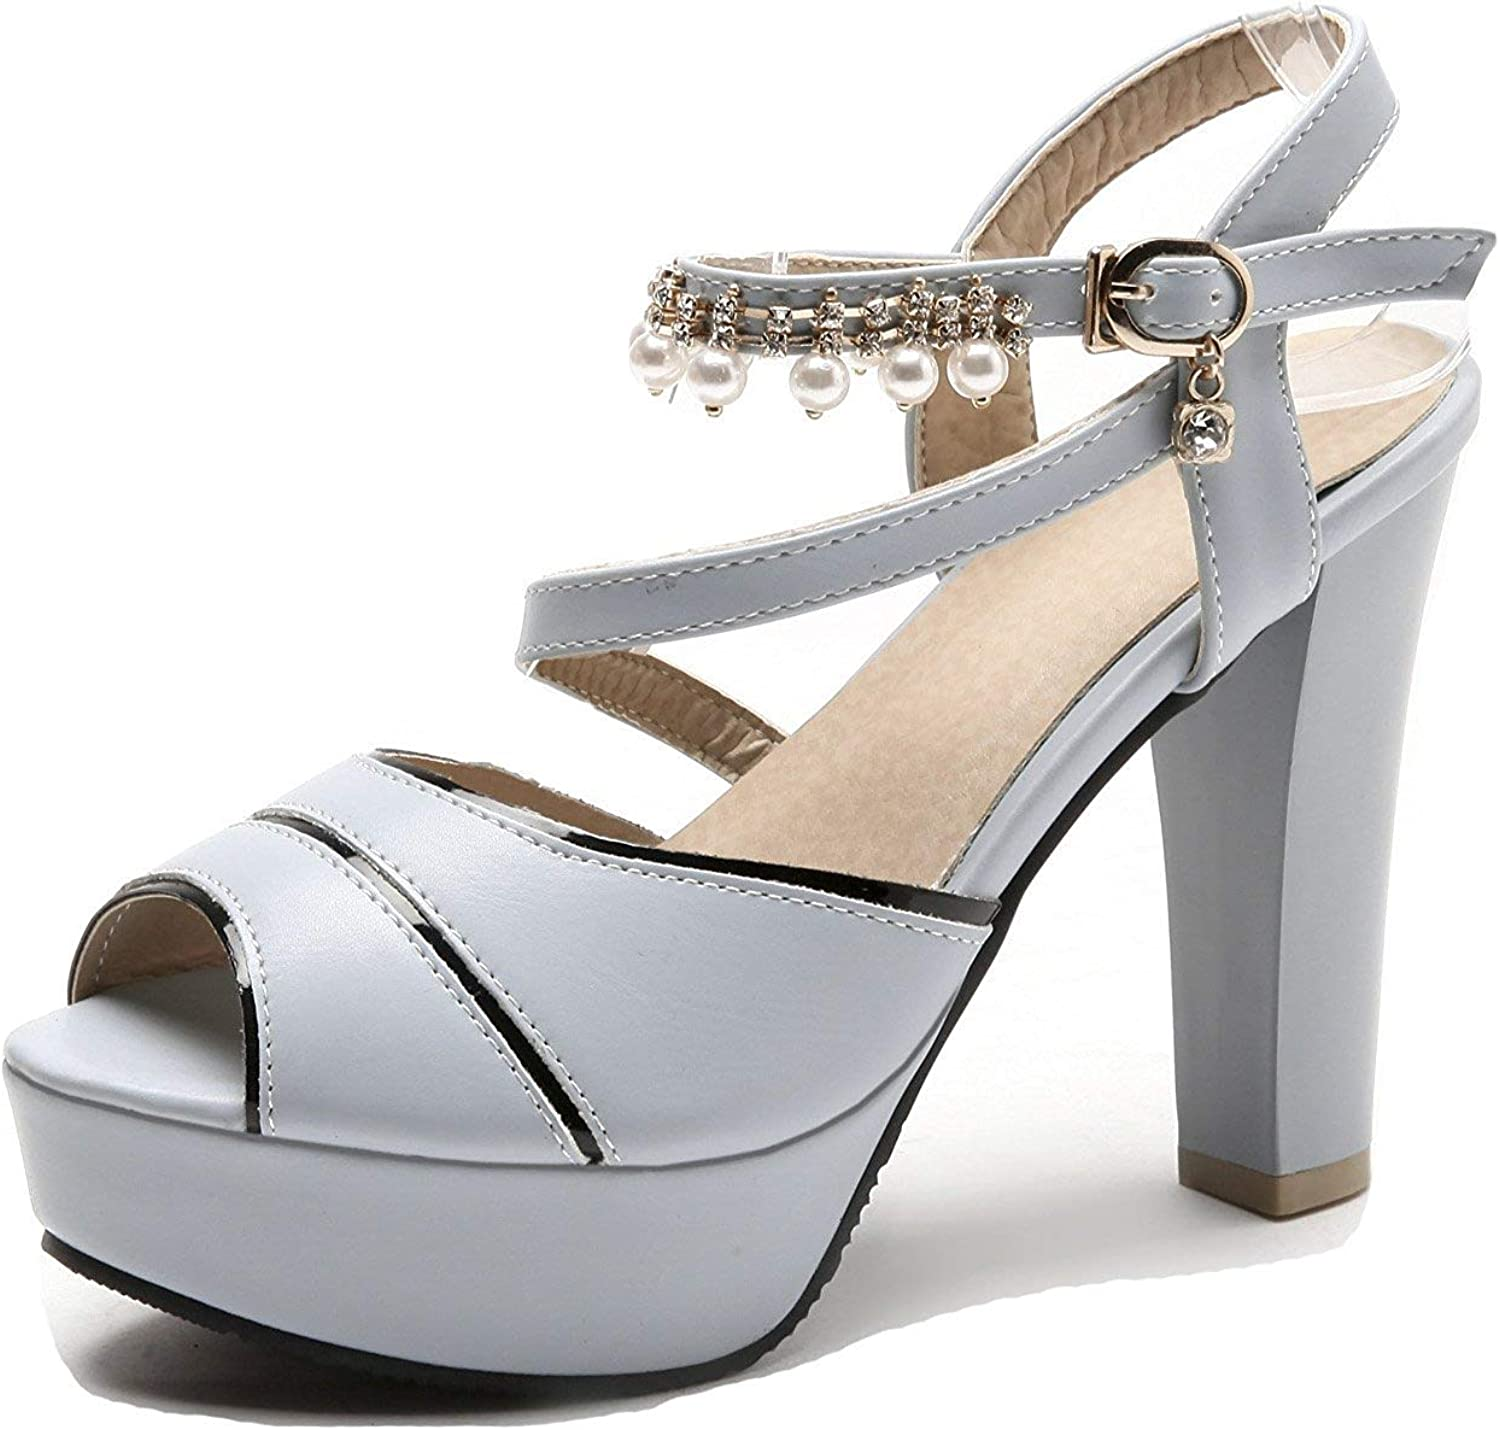 Unm Women's Platform Sandals with Ankle Strap - Beaded Peep Toe Chunky - Buckled High Heels